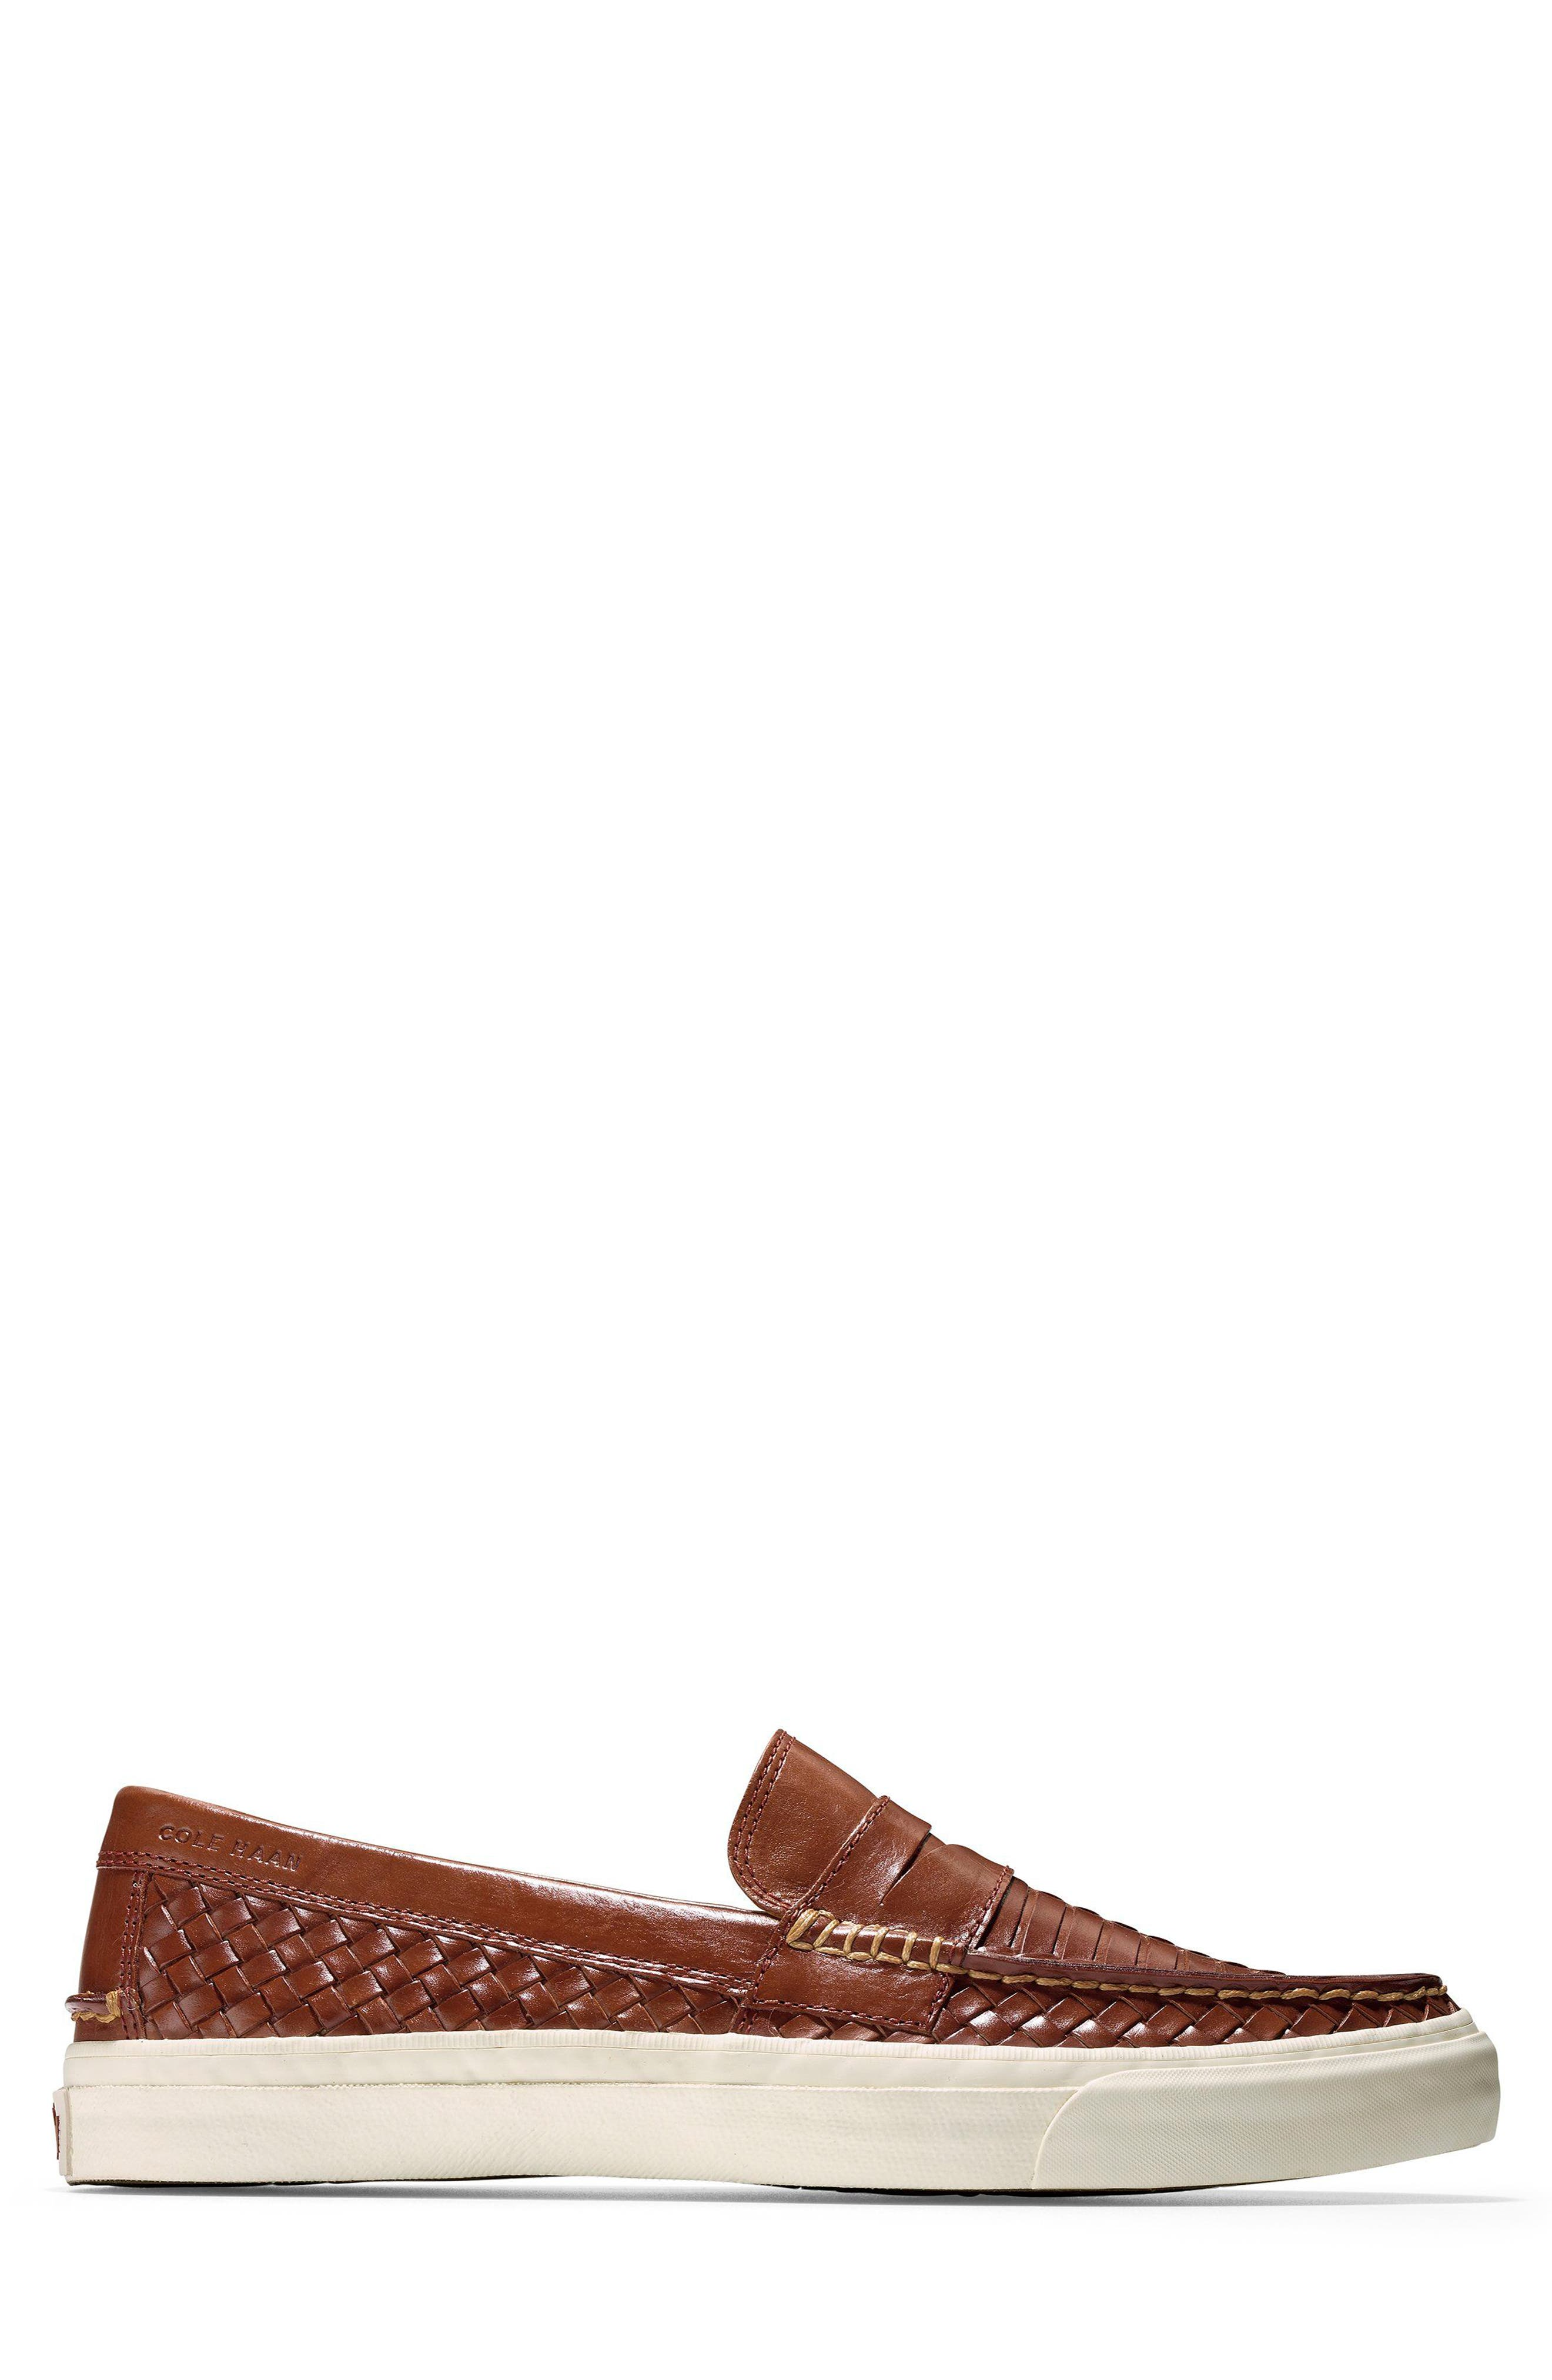 Pinch Weekend LX Huarache Loafer,                             Alternate thumbnail 3, color,                             WOODBURY WOVEN BURNISH